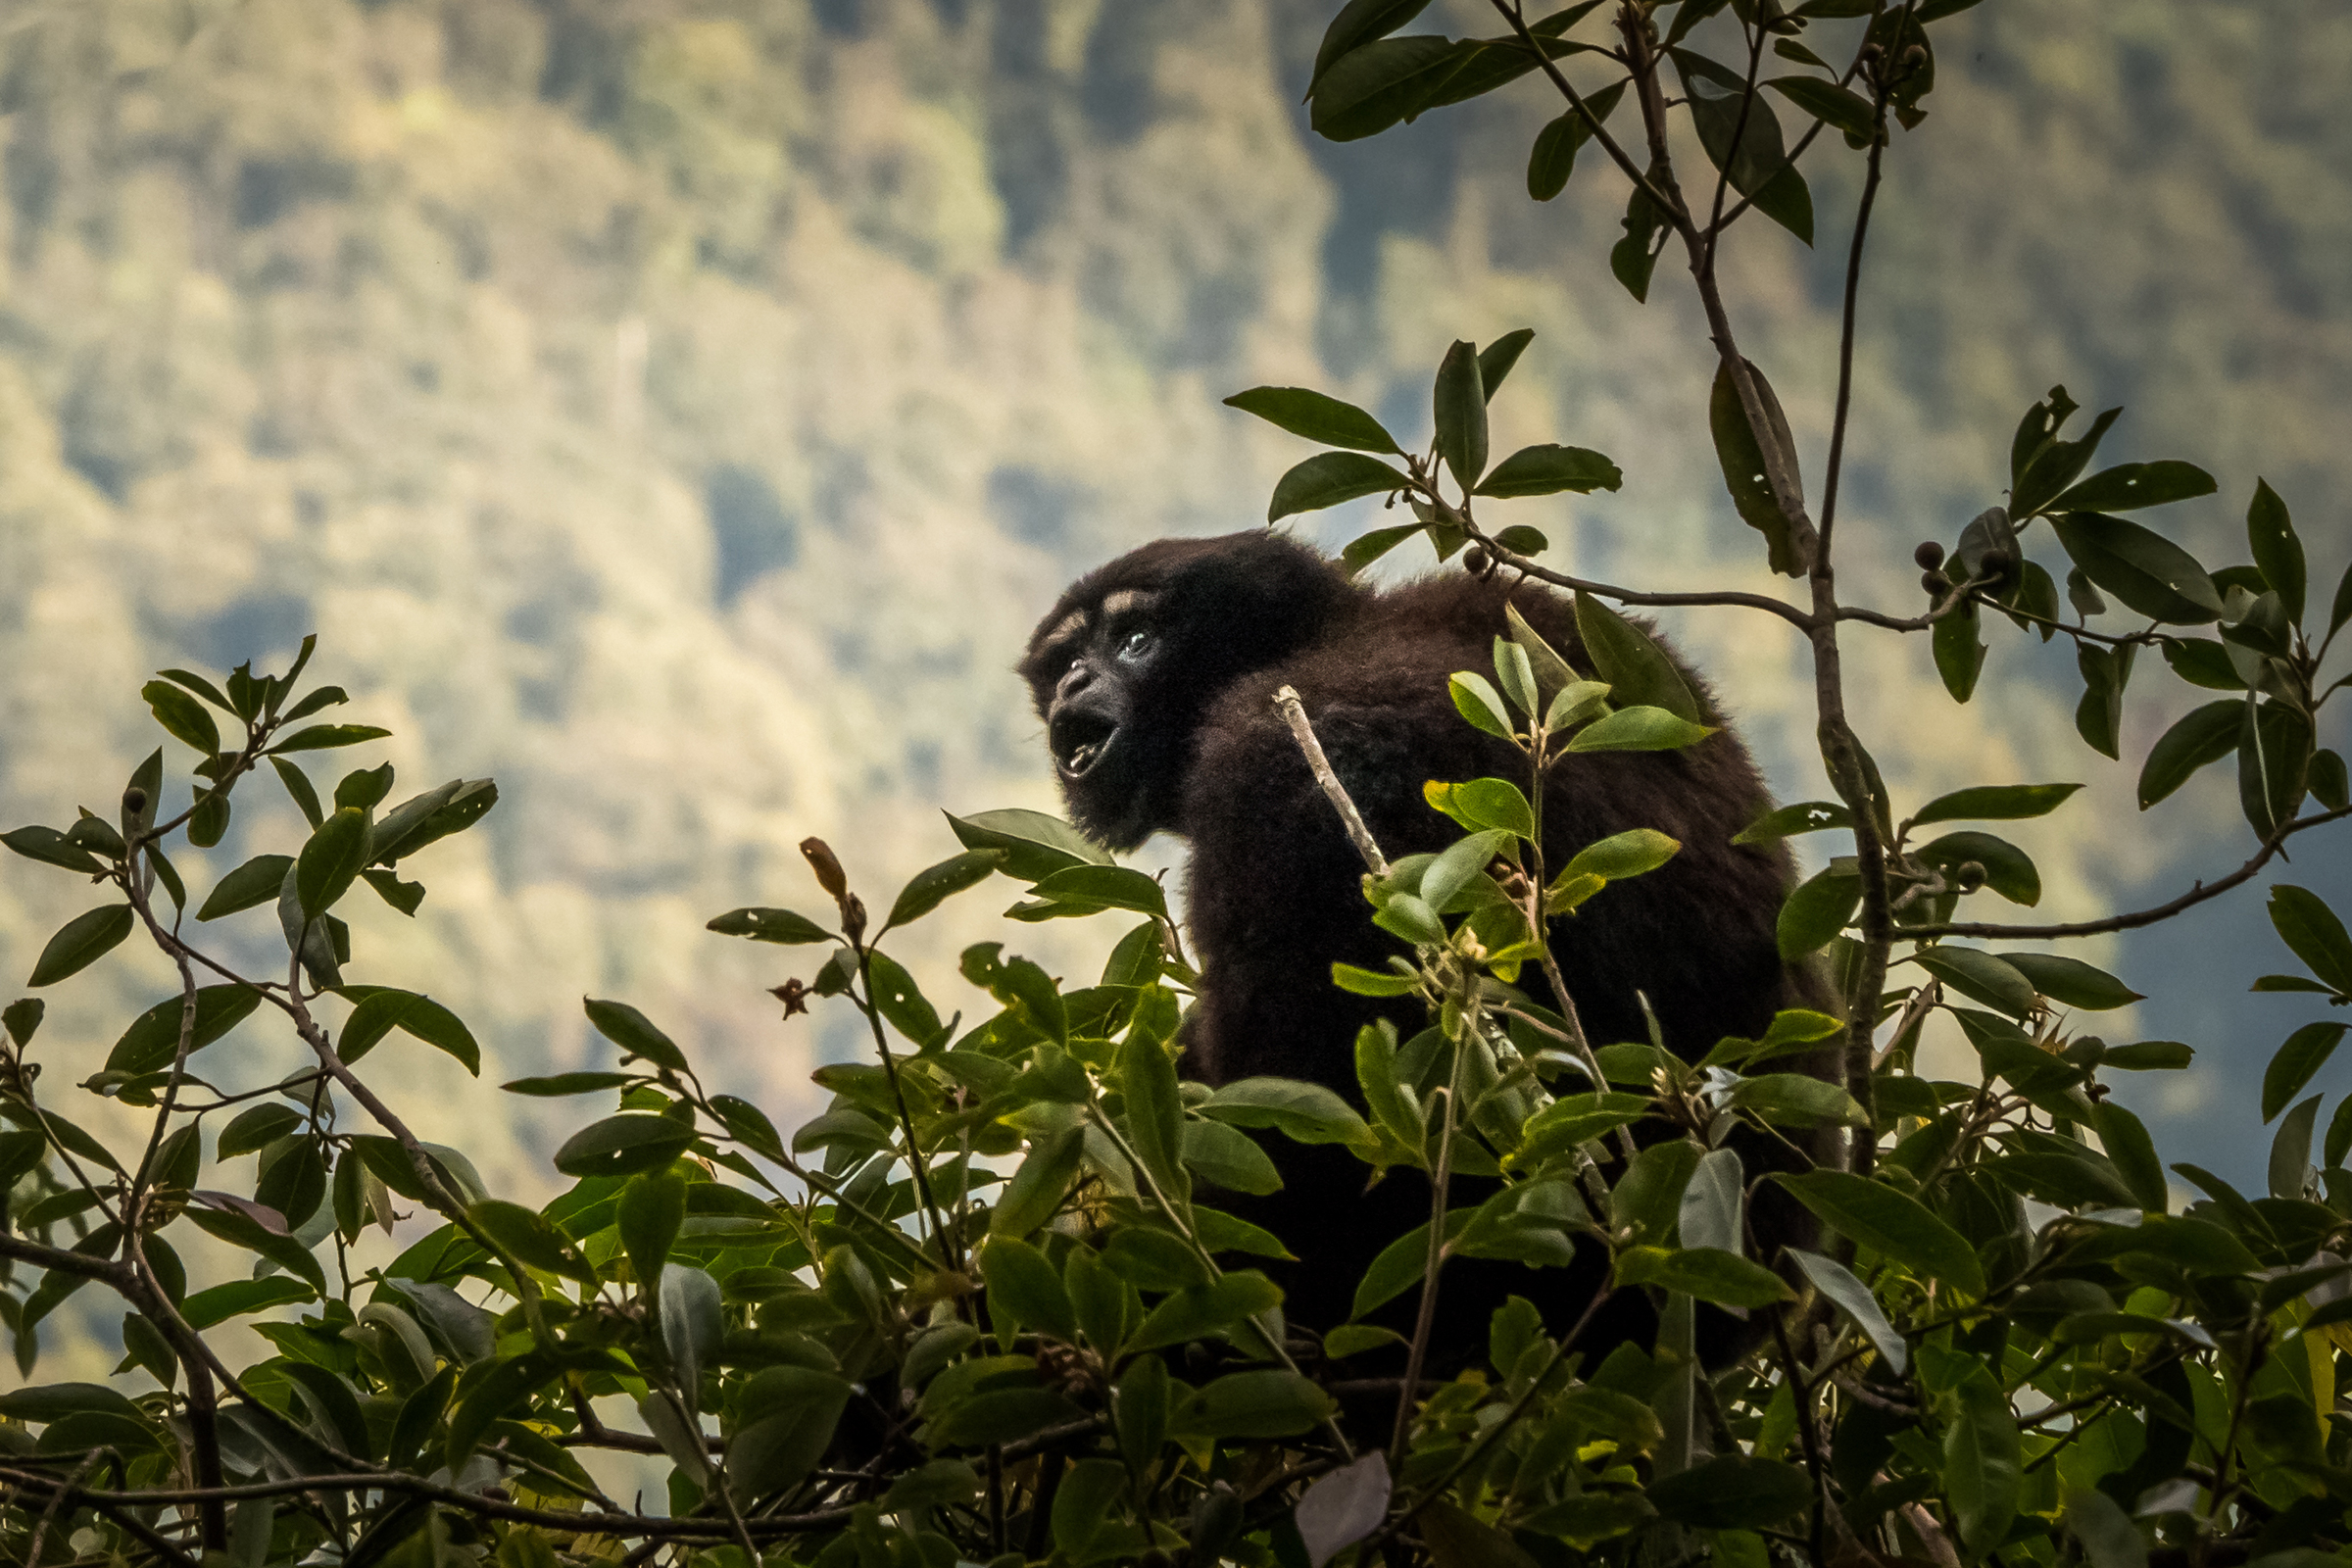 Skywalker gibbon songs can last up to 30 minutes and can be heard from more than a mile away.